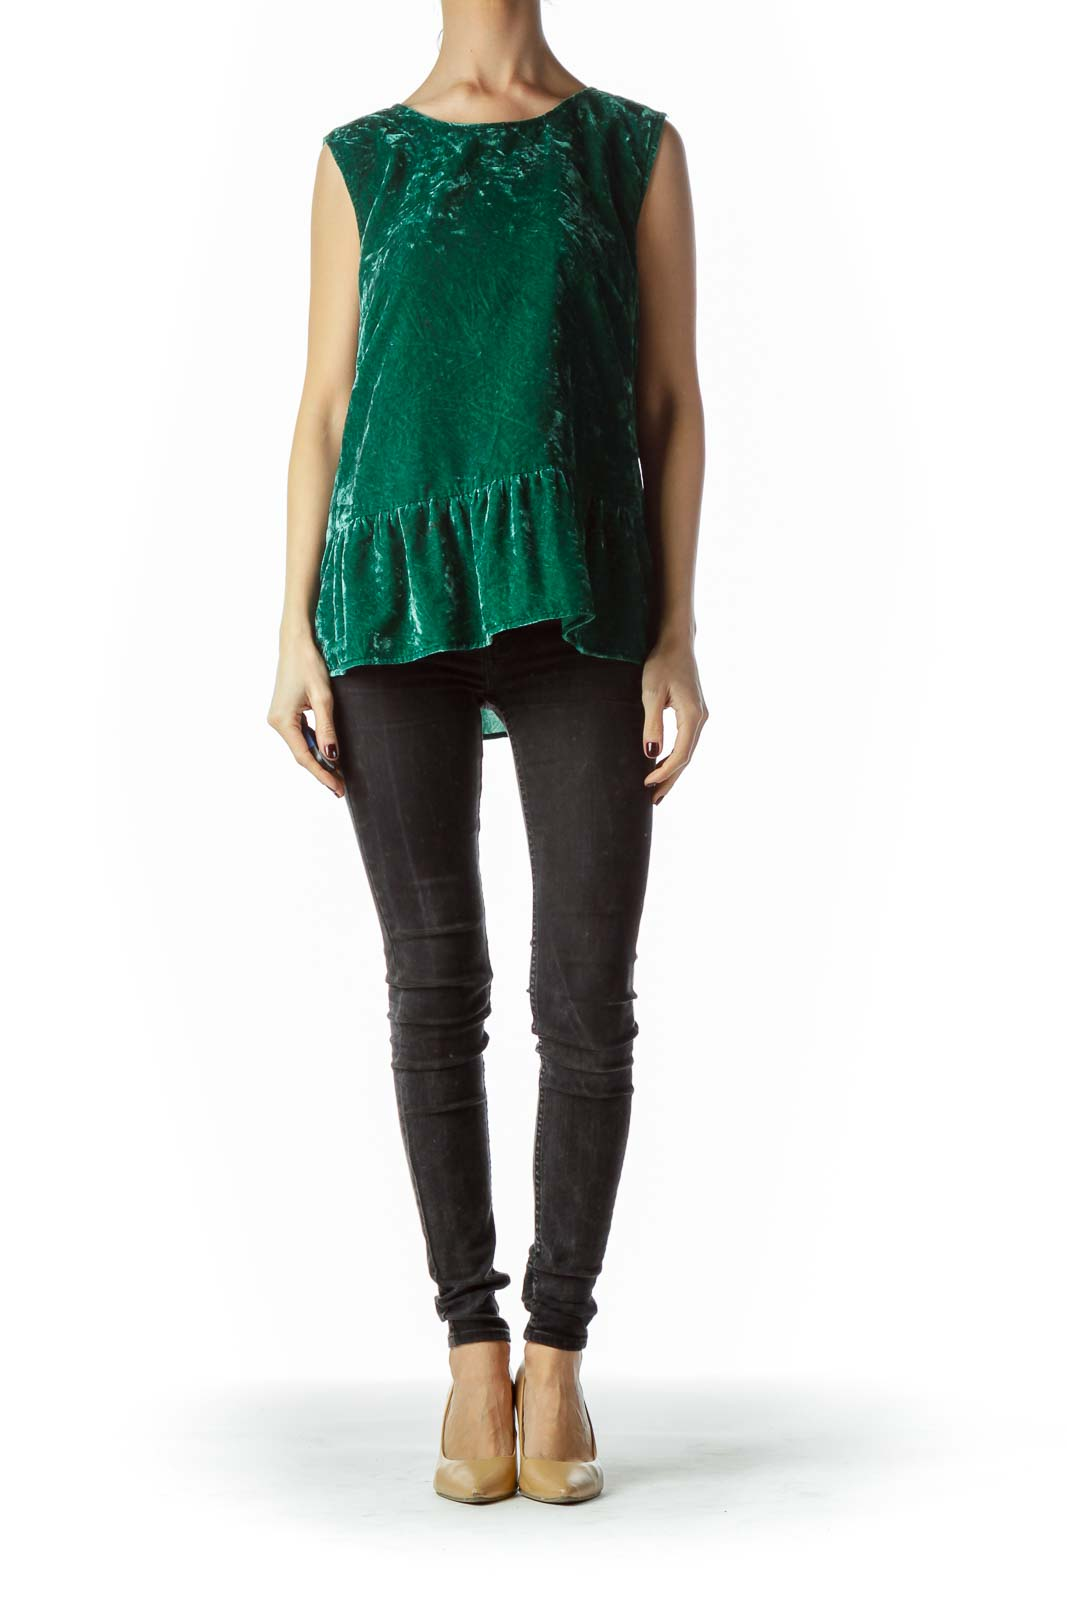 Emerald Green Velvet Sleeveless Top